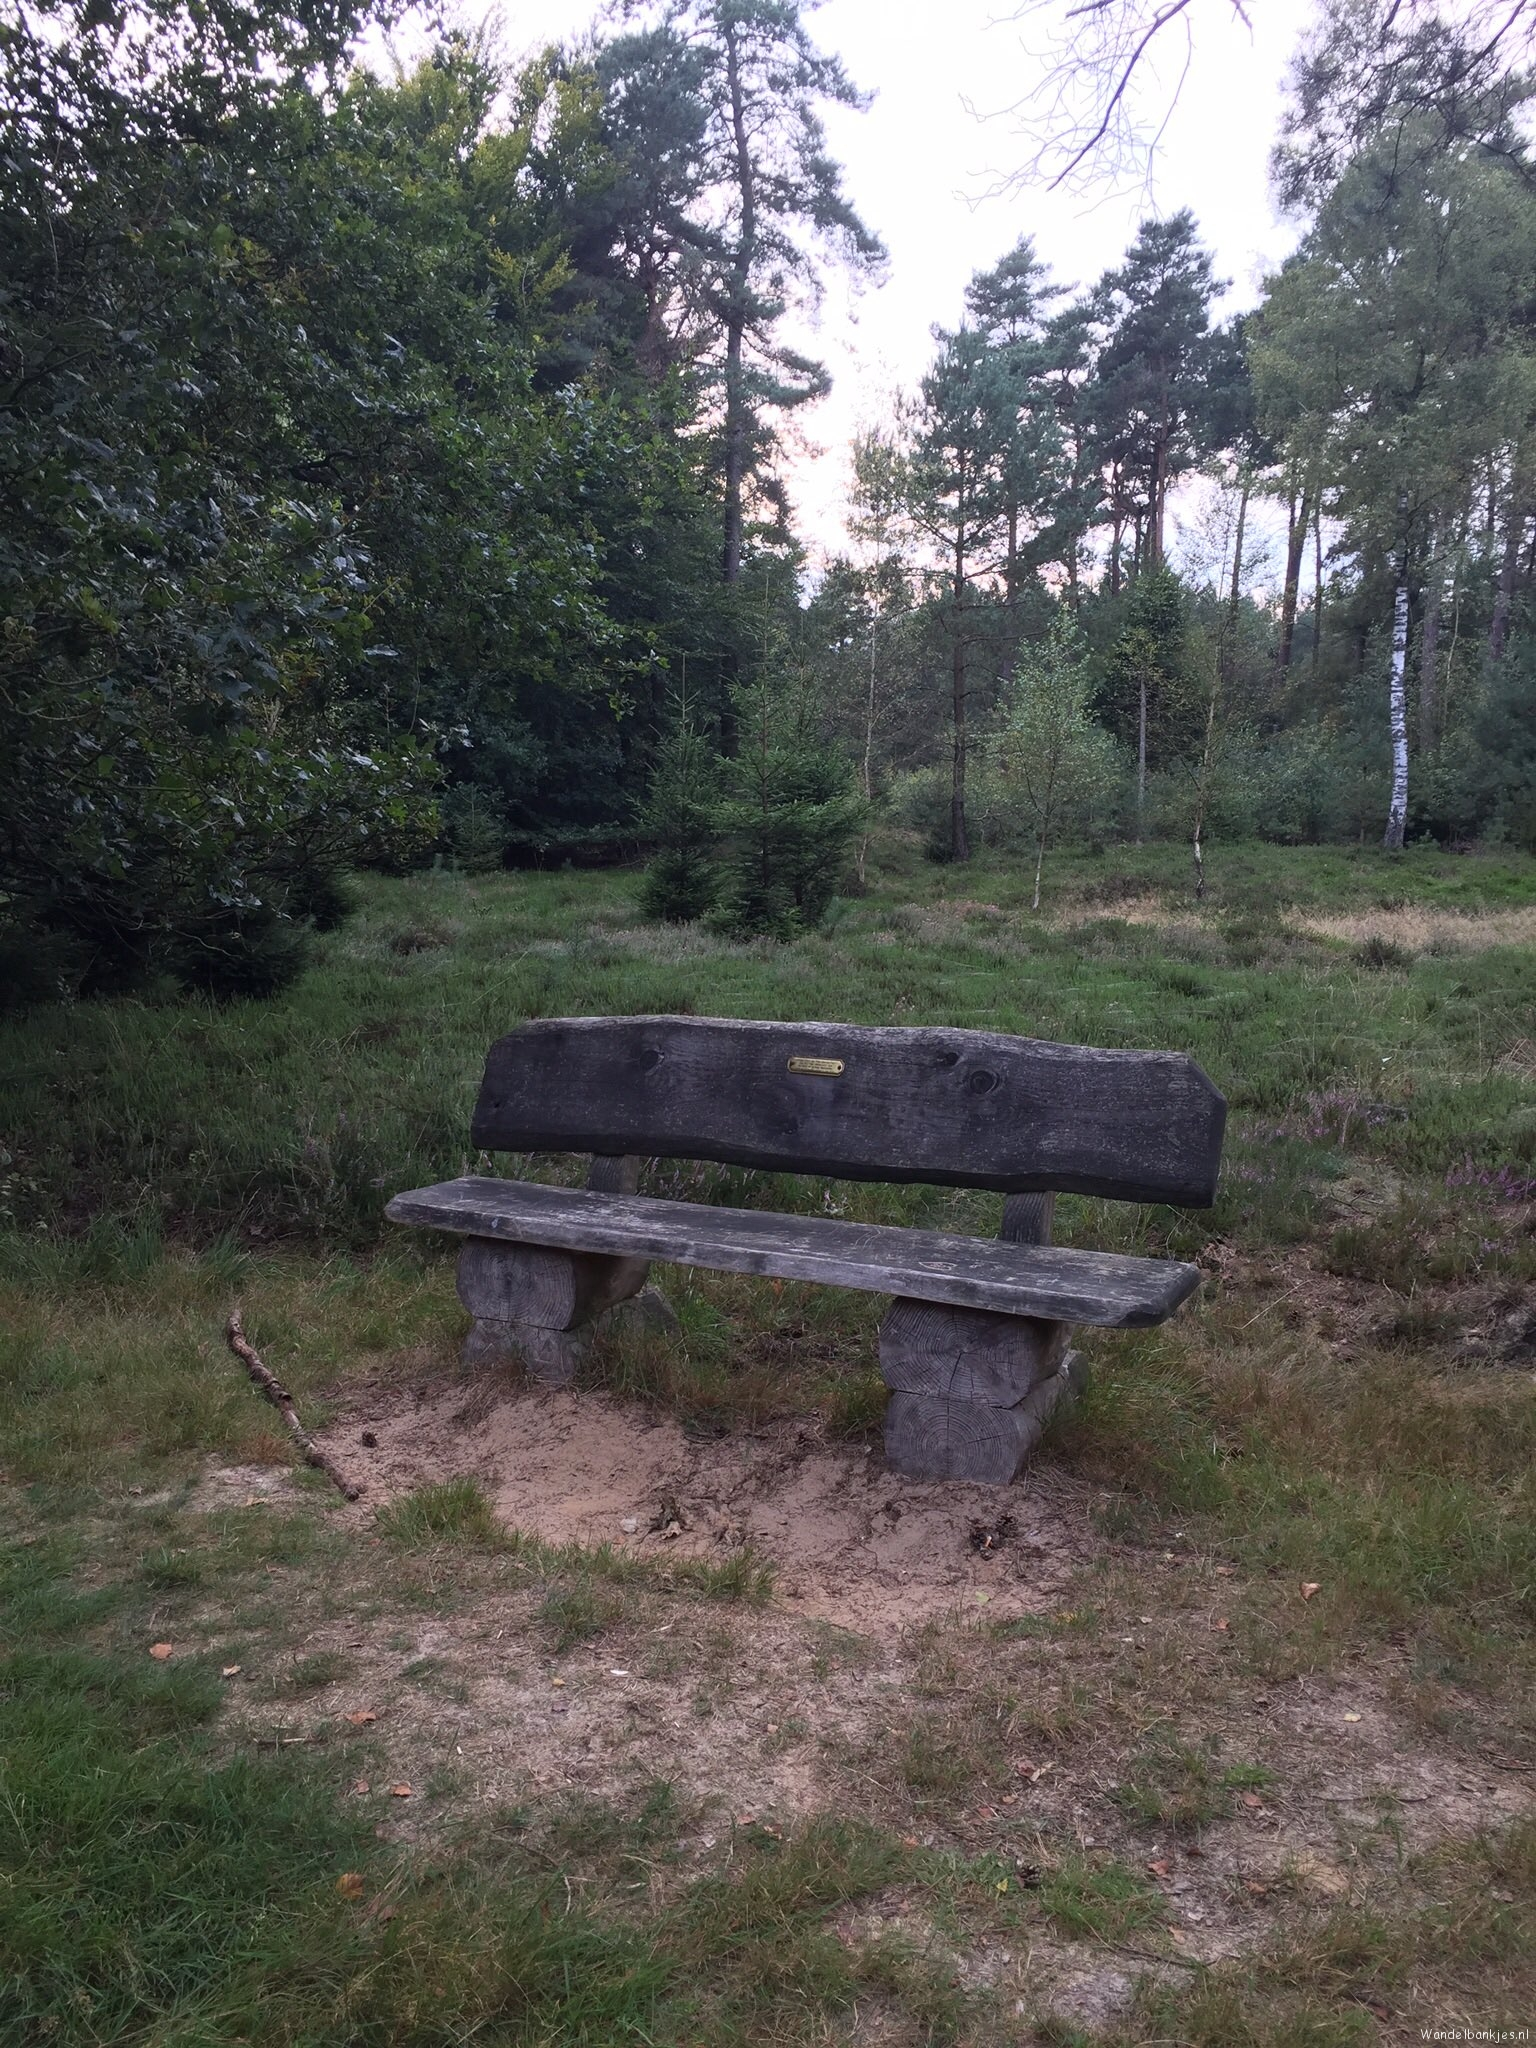 rt-gertientje-leuk-bank-spotted-in-the-cape-forest-to-doorn-walk-benches-walkersbenches-httpst-cogwt4axnnid